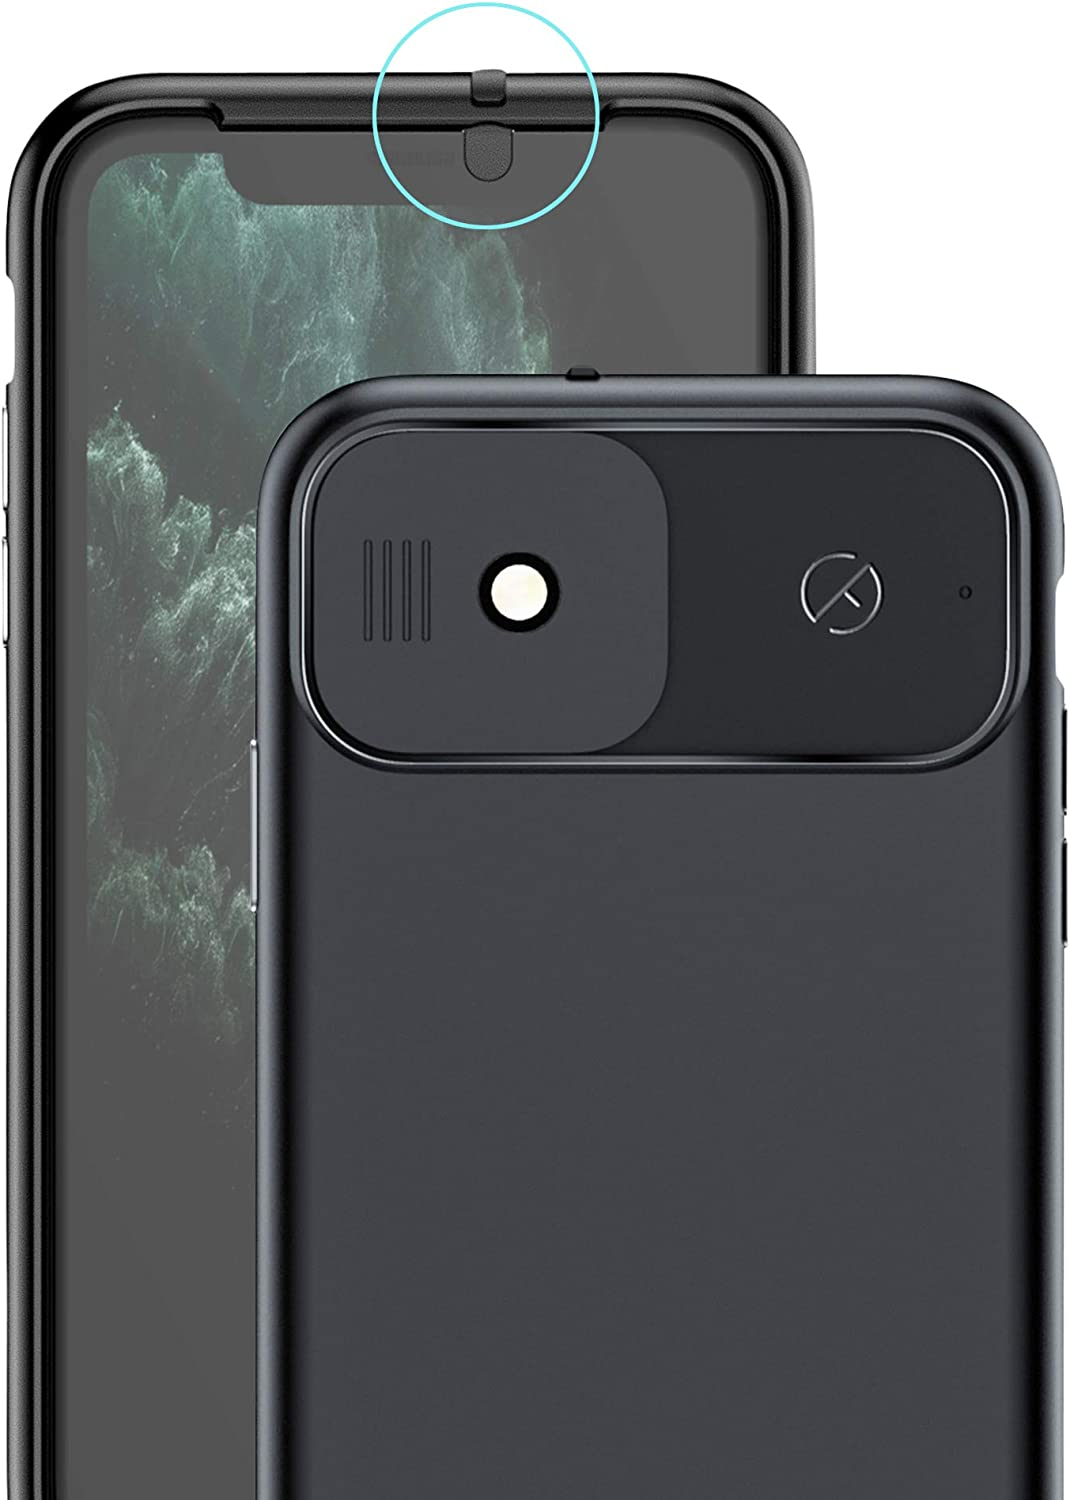 Spy-Fy iPhone 11 Case with Camera Covers Front and Rear | Protect Your iPhone and Privacy | 6-Foot Drop Proof | 6.1 Inch | Matte Black